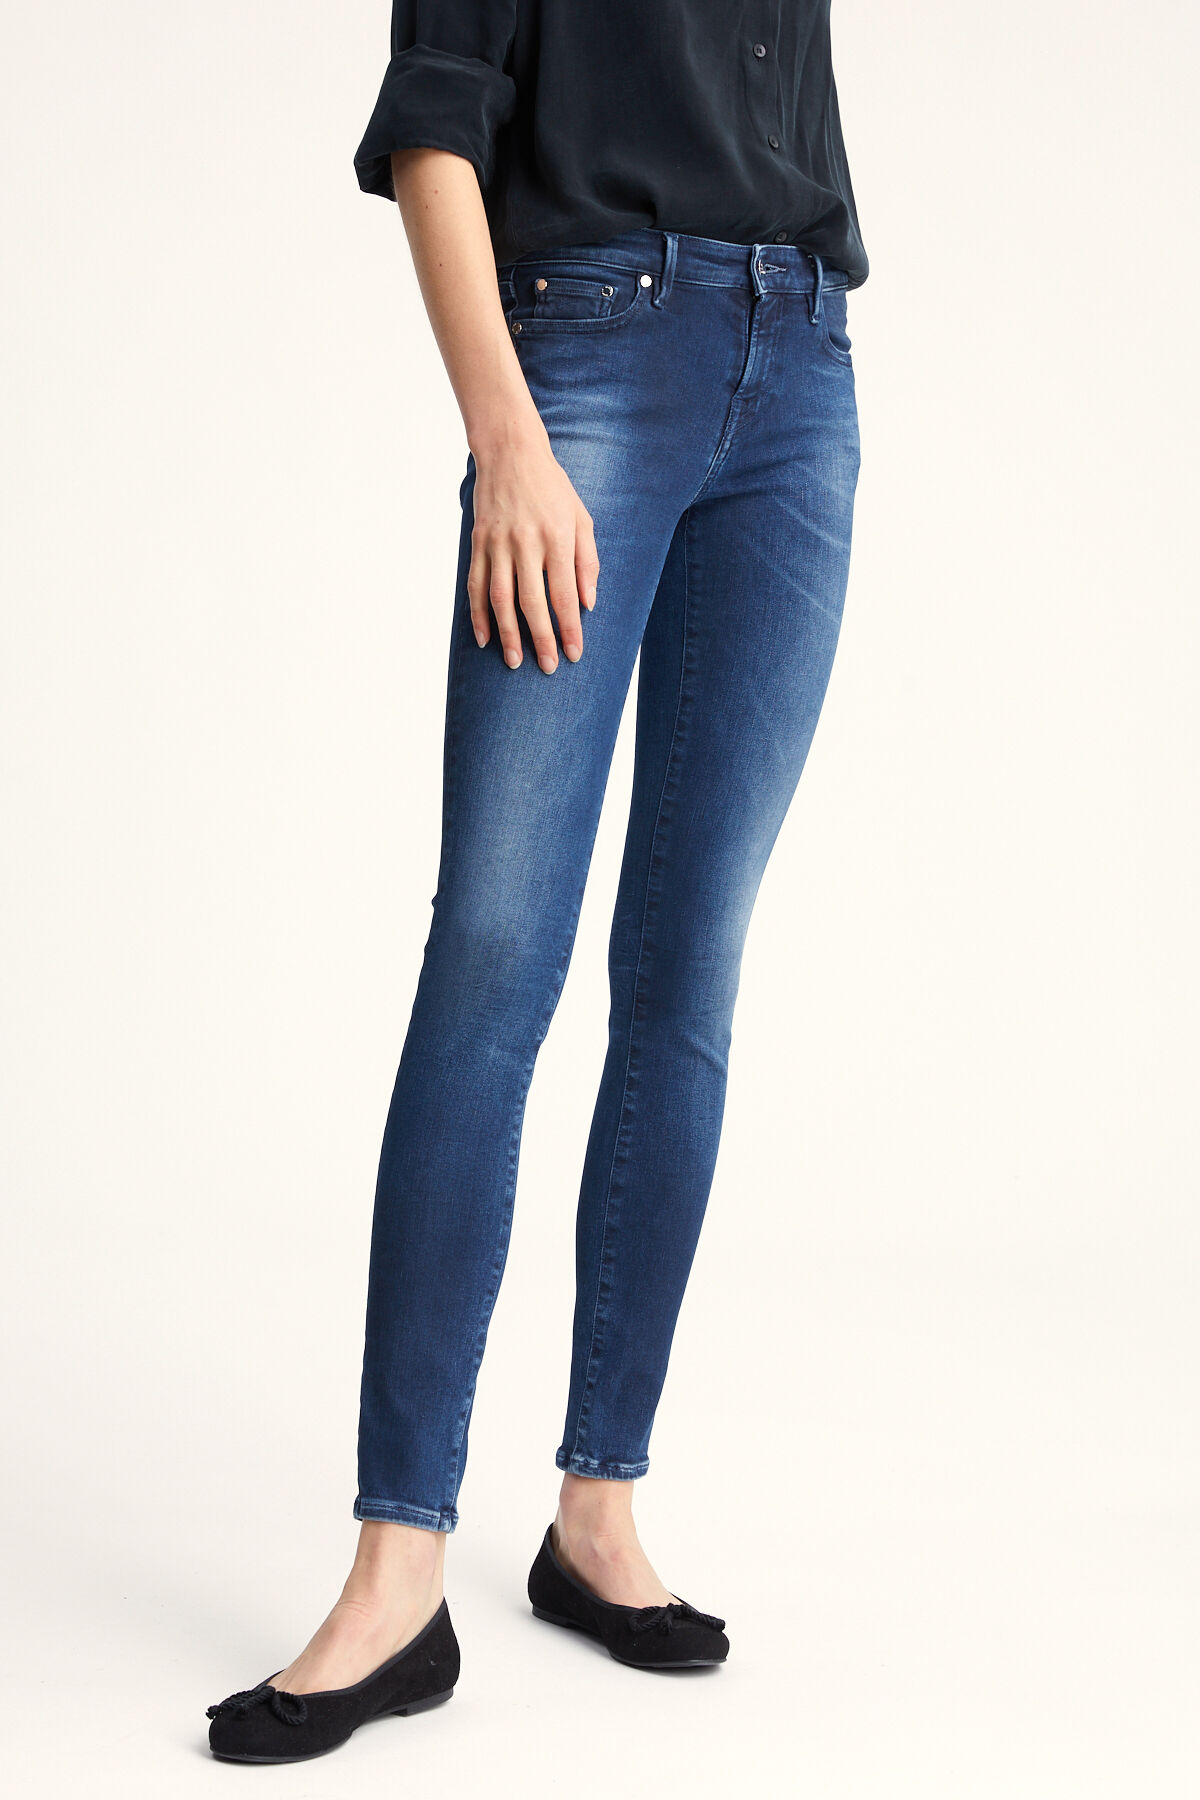 SPRAY Three-Year Indigo Denim  - Mid-rise, Tight FIt